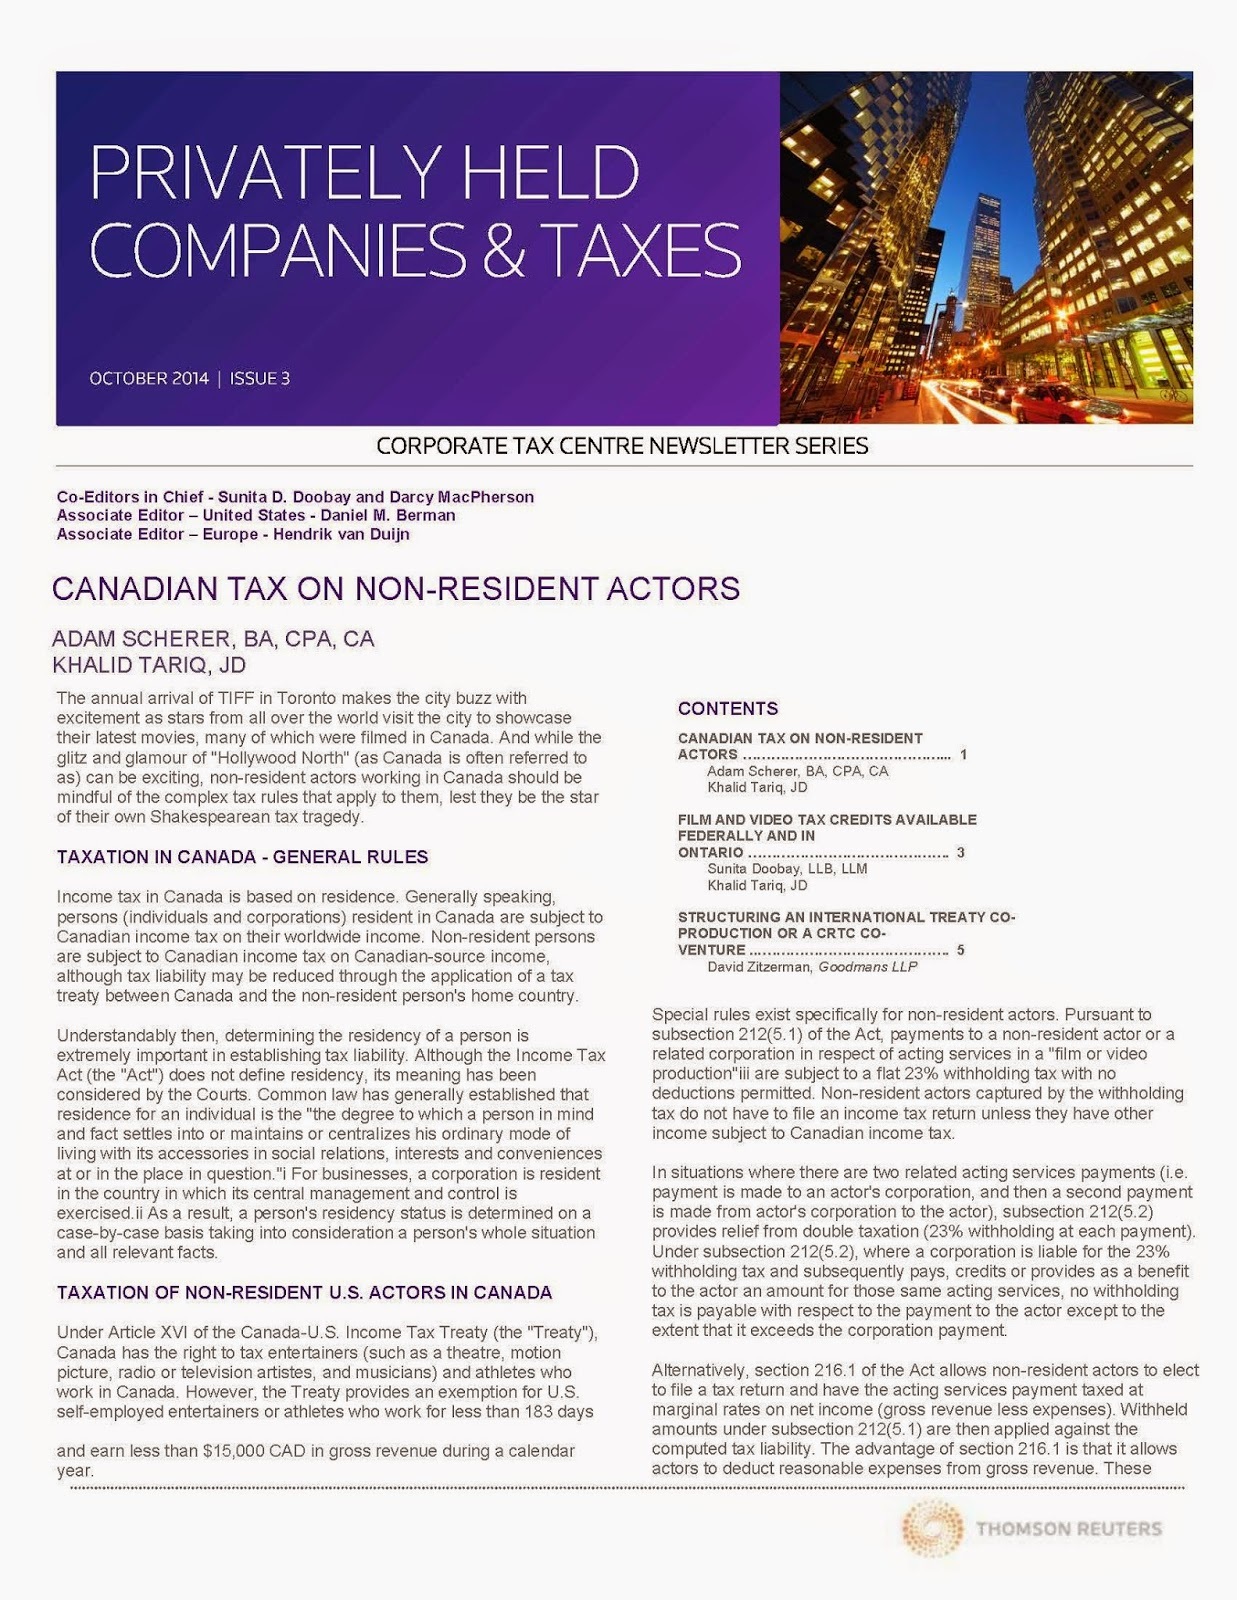 http://www.taxchambers.ca/wp-content/uploads/2014/10/Privately-Held-Companies-Taxes-Oct-2014.pdf